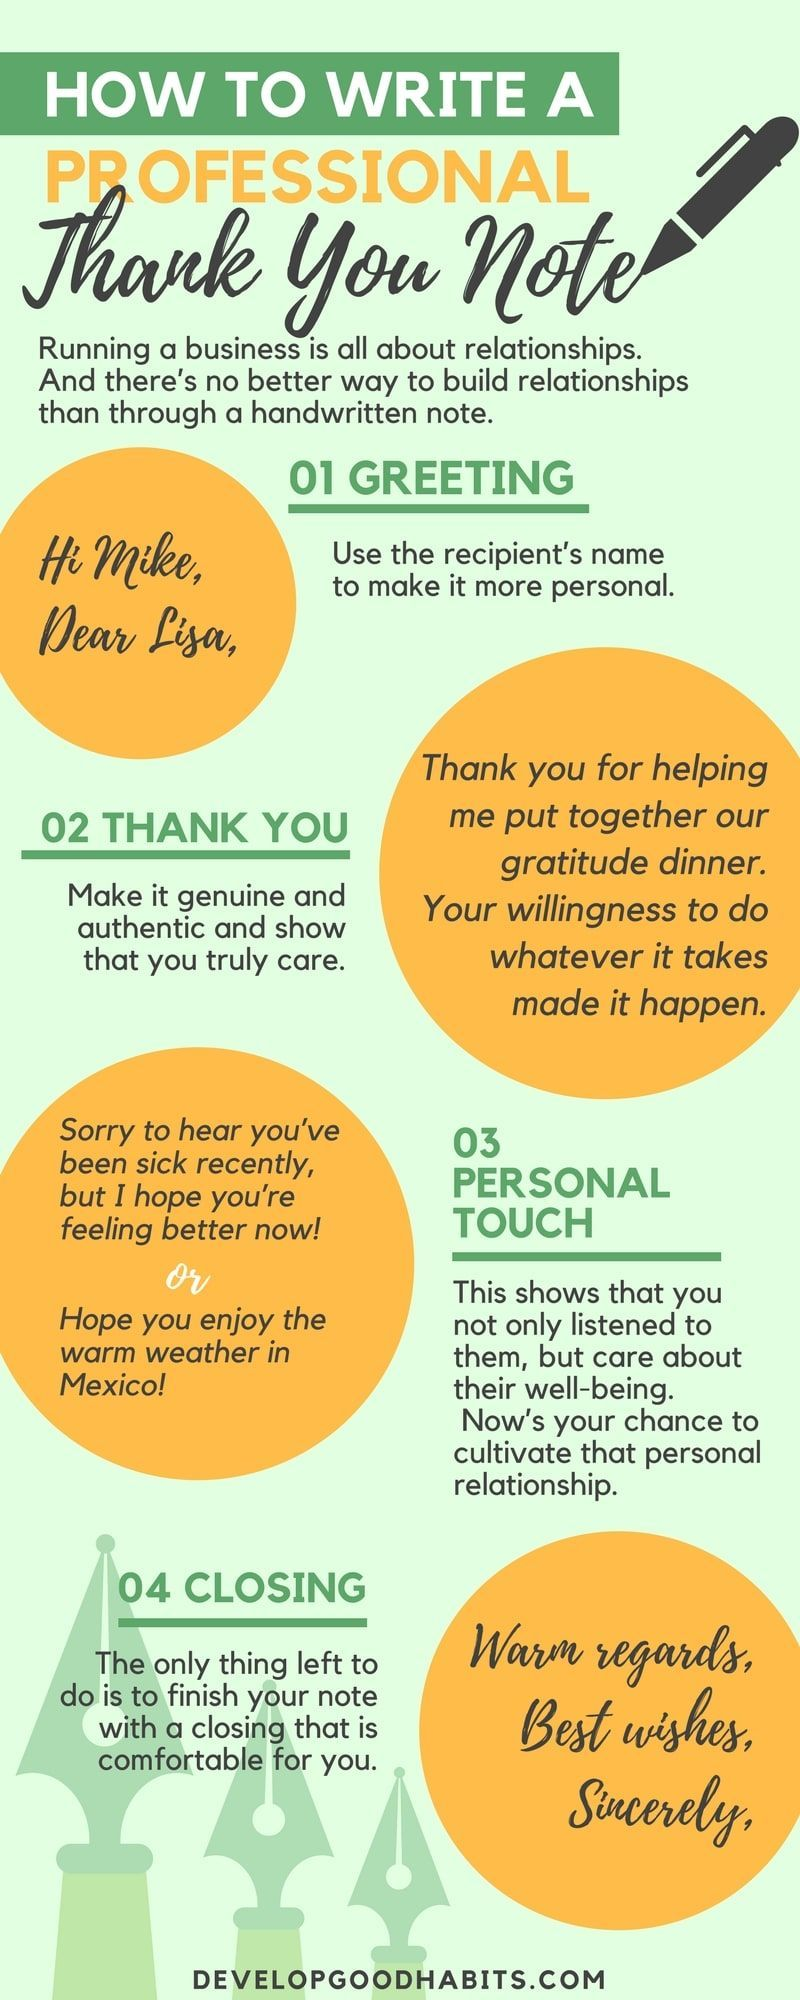 Learn How To Word A Professional Thank You Note To Send To Your Business Connections Infographic Business Career Cashflow Thank You Notes Writing Business